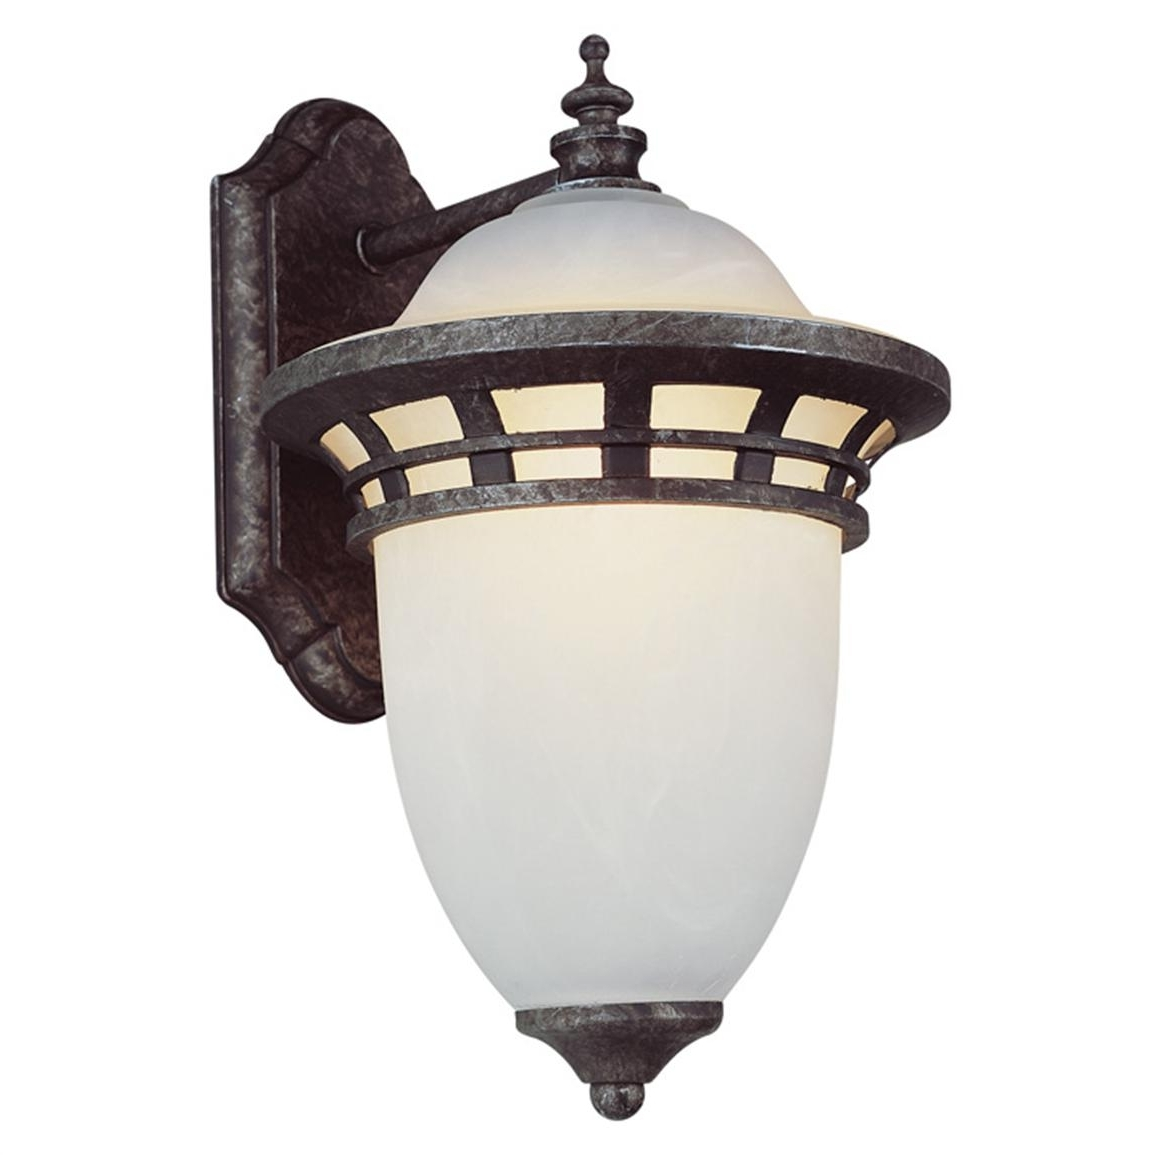 Newest Outdoor Wall Lantern By Transglobe Lighting Inside Trans Globe Lighting 1 – Light Outdoor Antique Wall Lantern – (View 8 of 20)